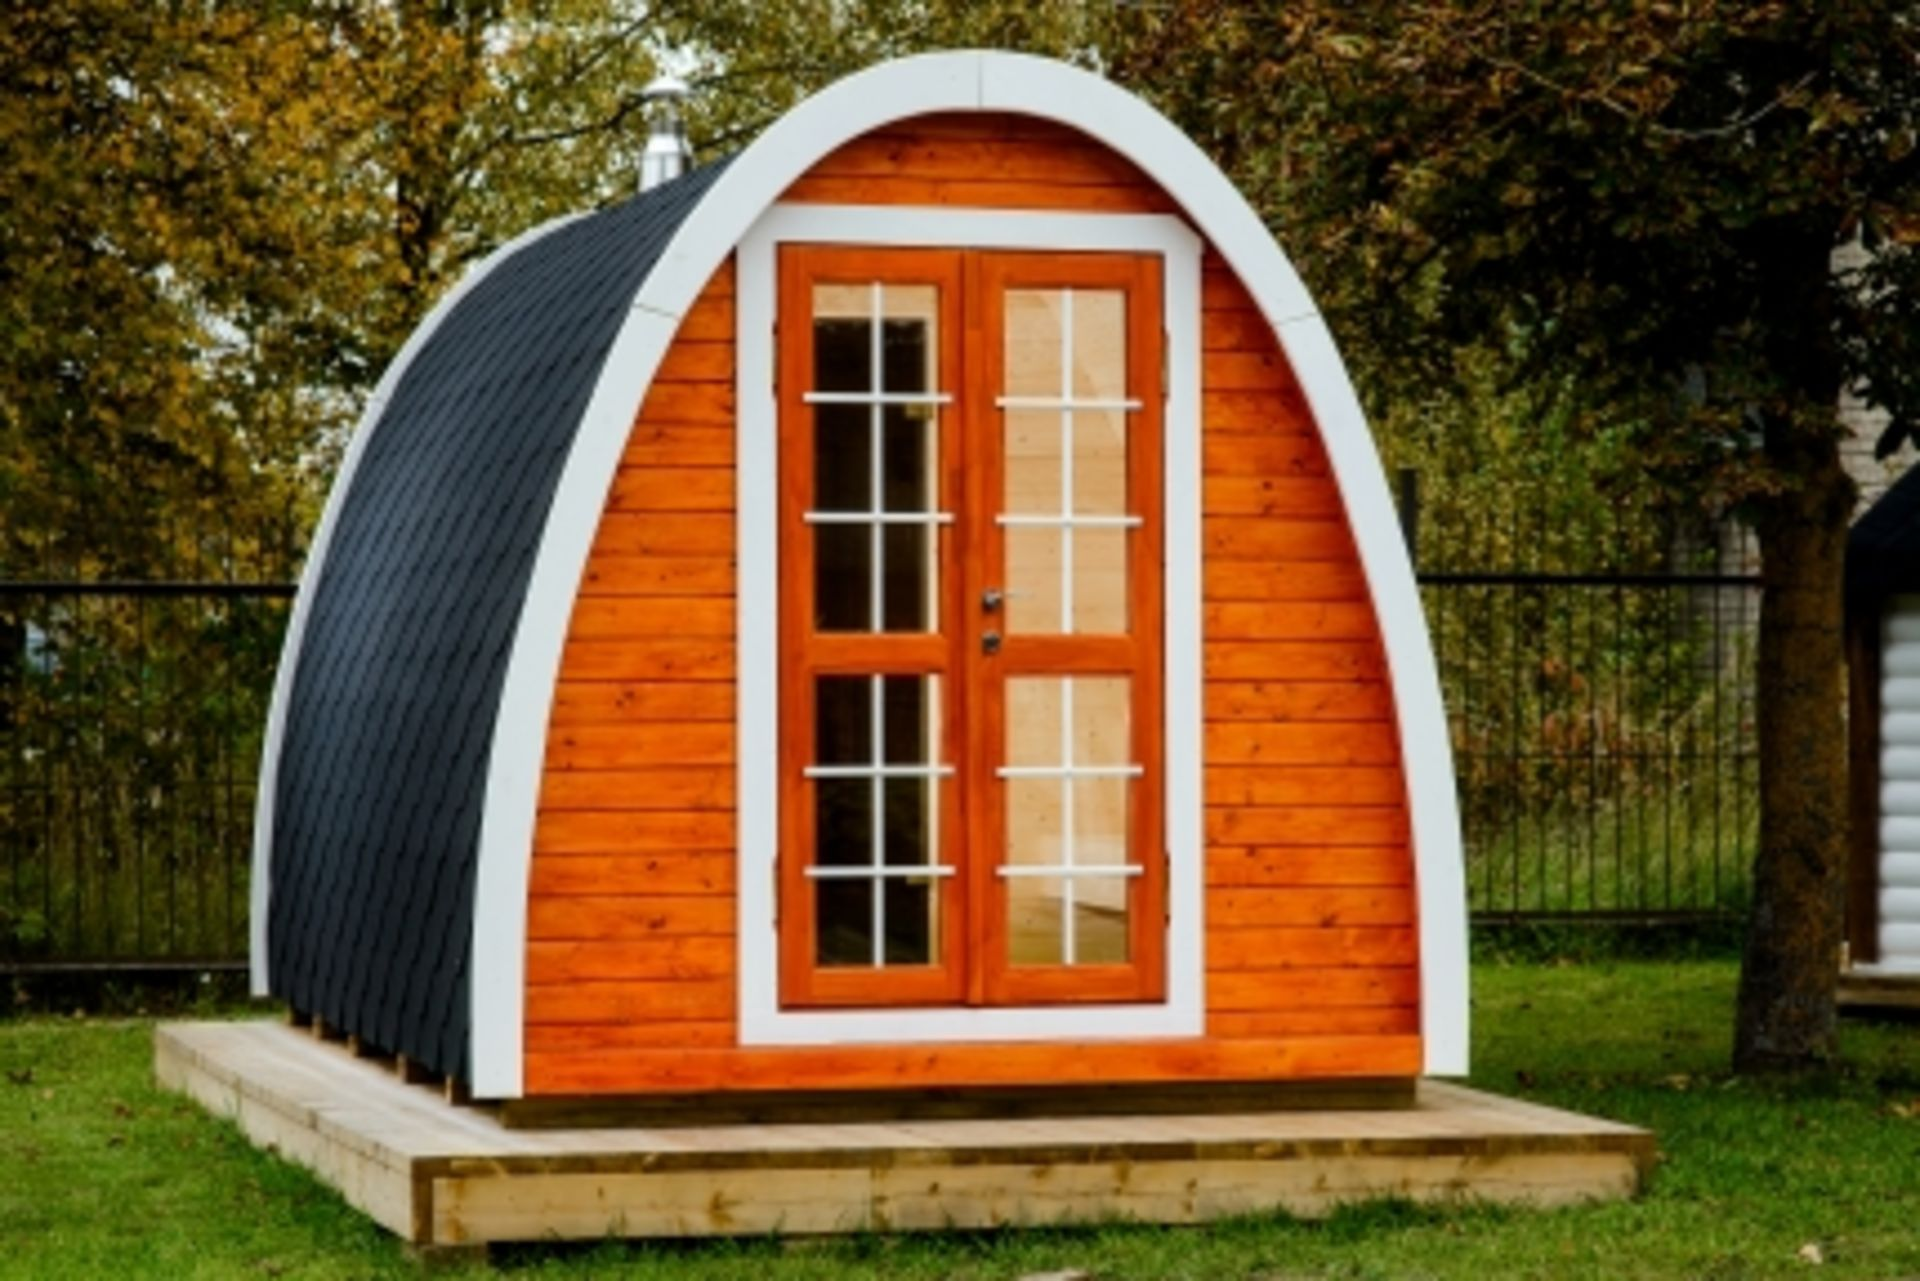 Lot 19020 - + VAT Brand New 2.4 x 4m Sauna Pod From Thermo Wood - Roof Covered With Bitumen Shingles - Two